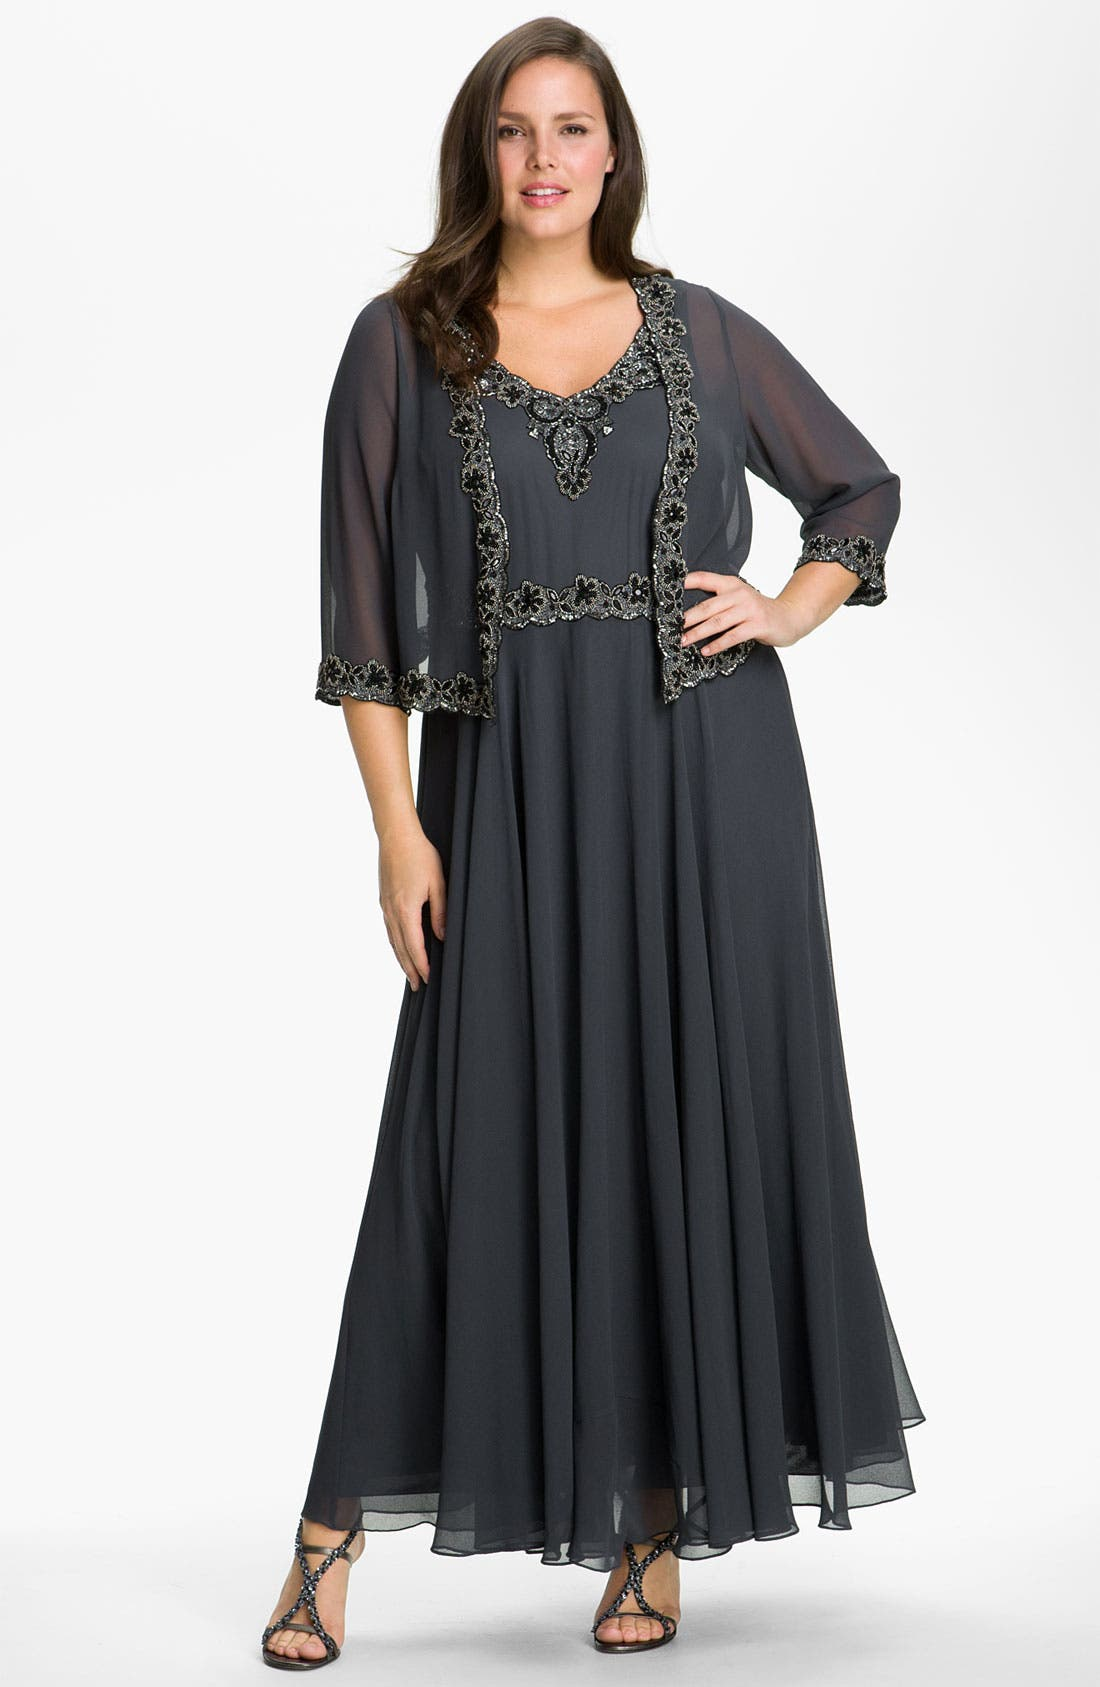 Alternate Image 1 Selected - J Kara Beaded Chiffon Gown & Jacket (Plus Size)